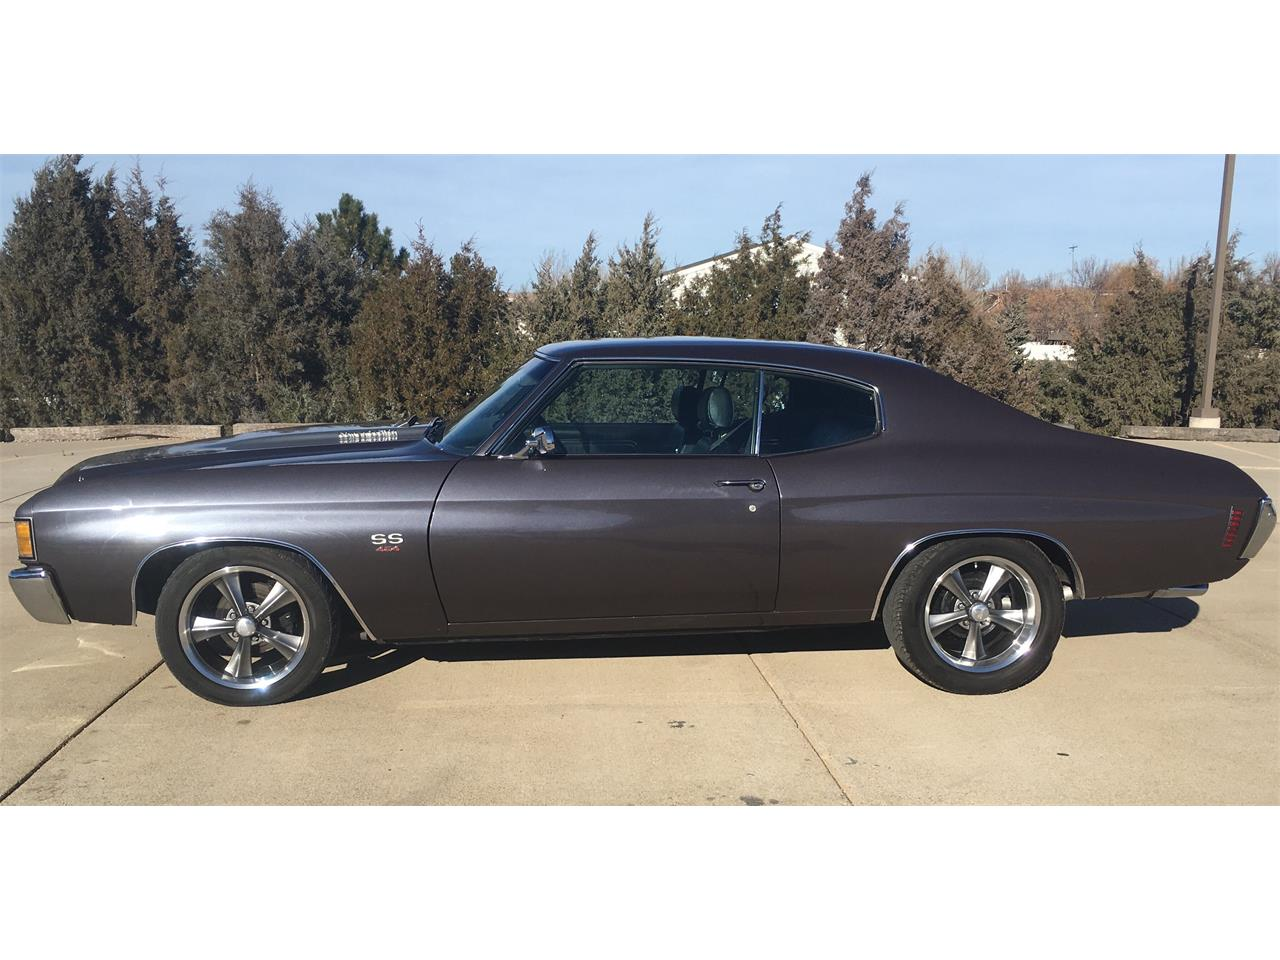 Large Picture of 1972 Chevrolet Chevelle SS located in South Dakota - OW11